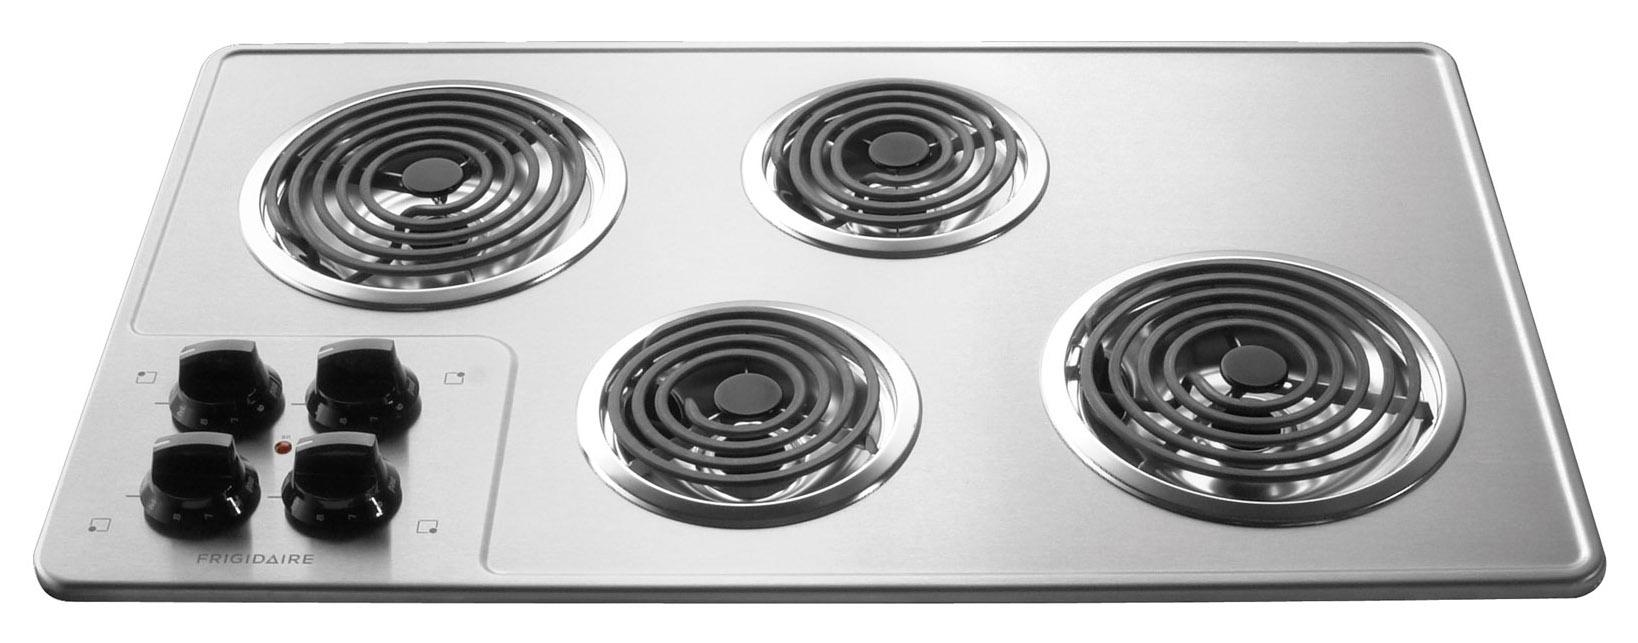 Cheap Electric Cooktops 32